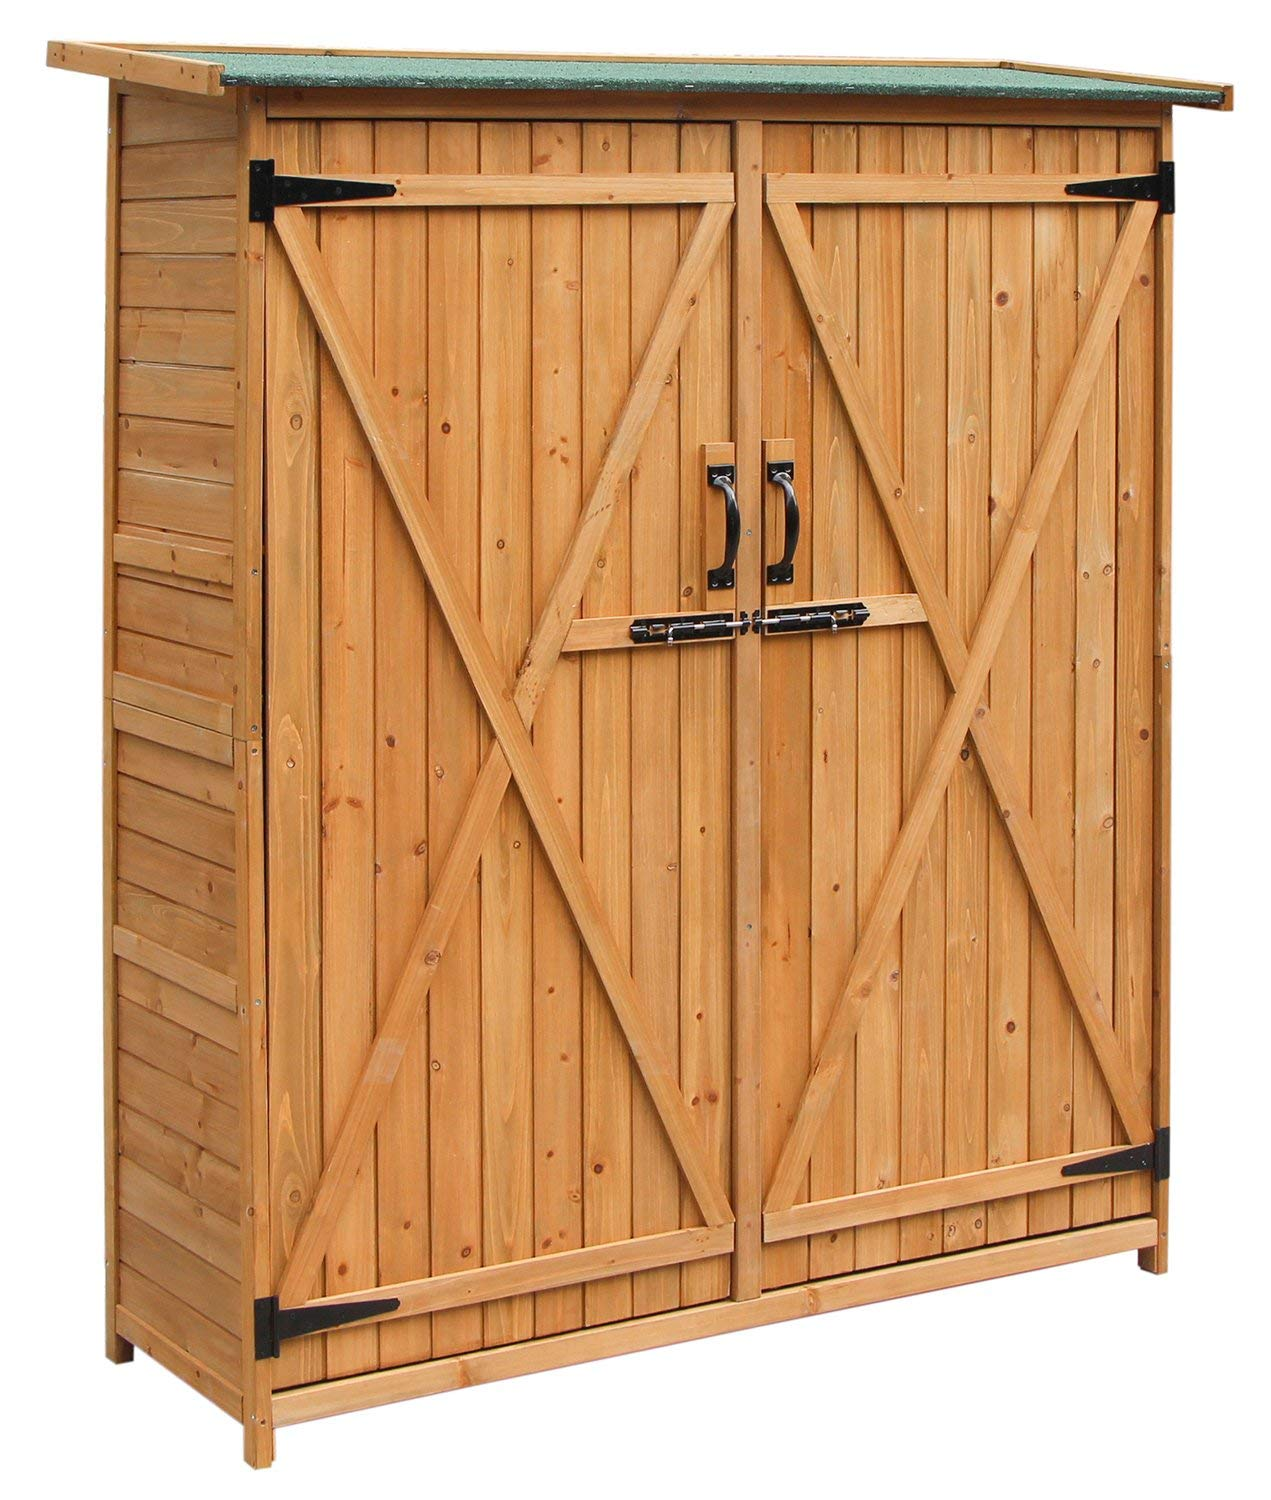 Merax Wooden Outdoor Garden with Fir Wood Storage Shed